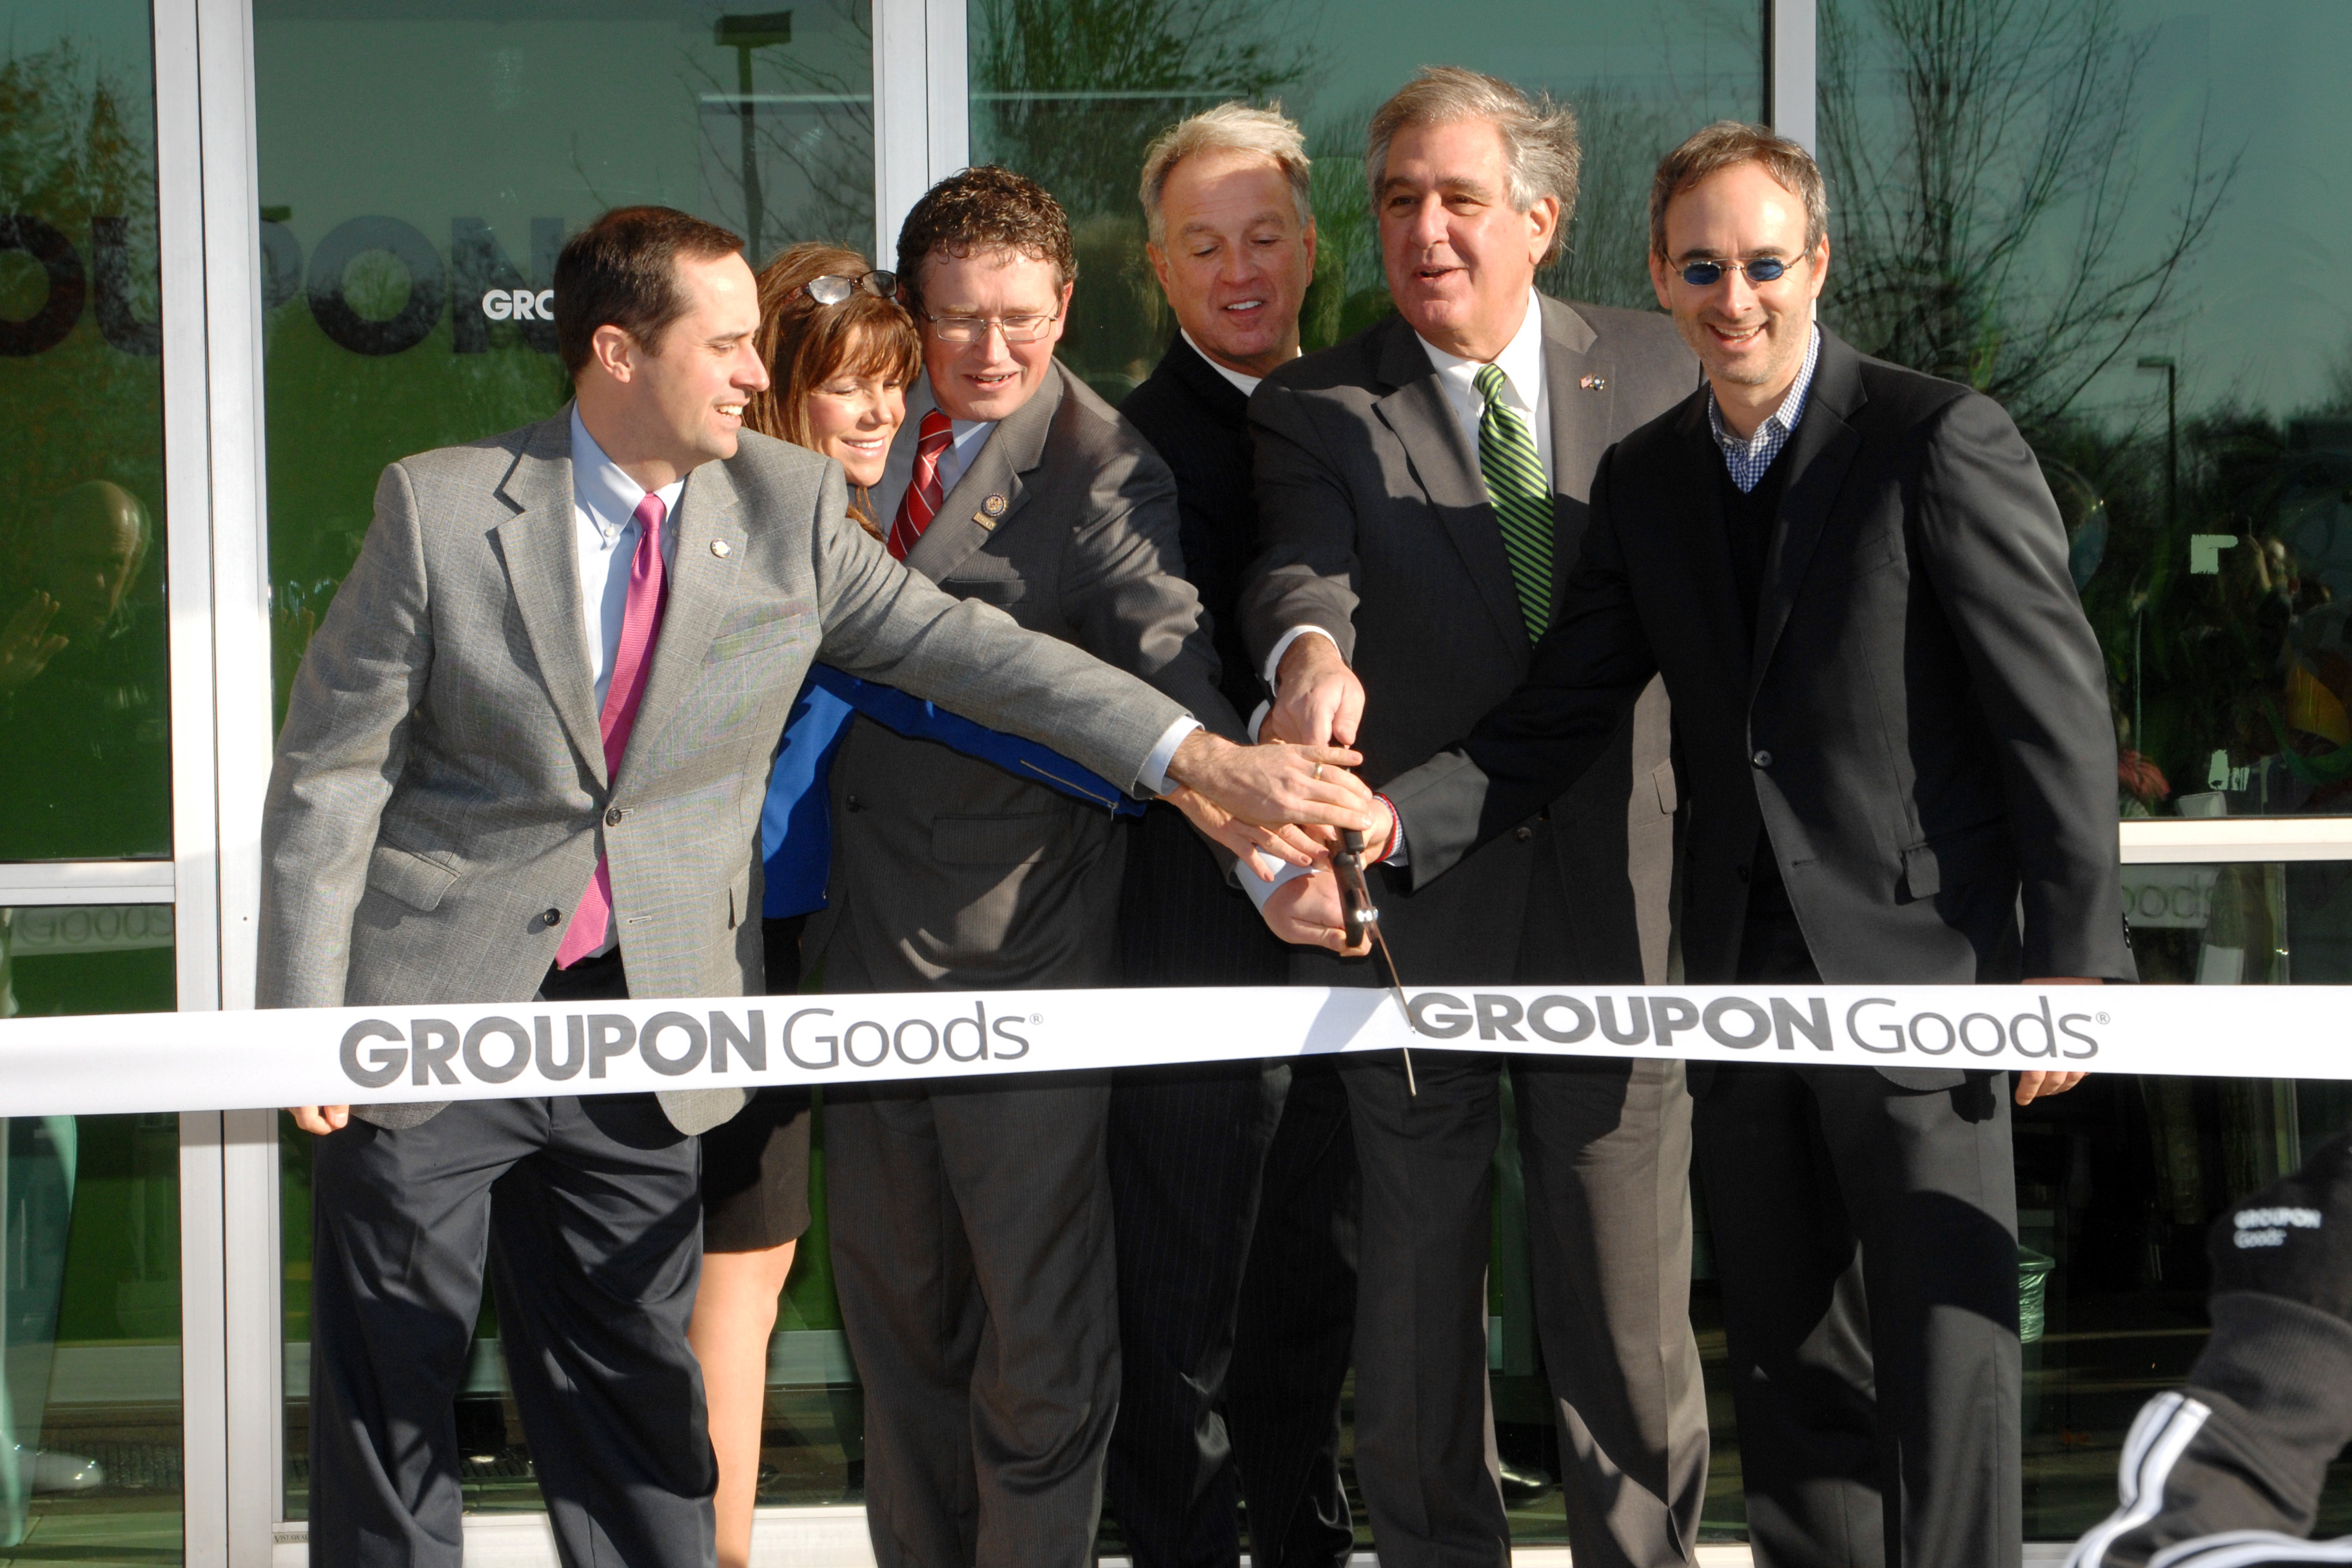 (Left to Right) Kentucky State Senator Chris McDaniel, Kentucky State Representative Addia Wuchner, U.S. Representative Thomas Massie, Judge-Executive Gary Moore, Kentucky Lieutenant Governor Jerry Abramson and Groupon CEO Eric Lefkofsky at the ribbon-cutting ceremony for Groupon's new warehouse, the Groupon Goods Fulfillment Center, in Hebron, Ky. Nov. 18, 2013. Photo by Rick Lucas.